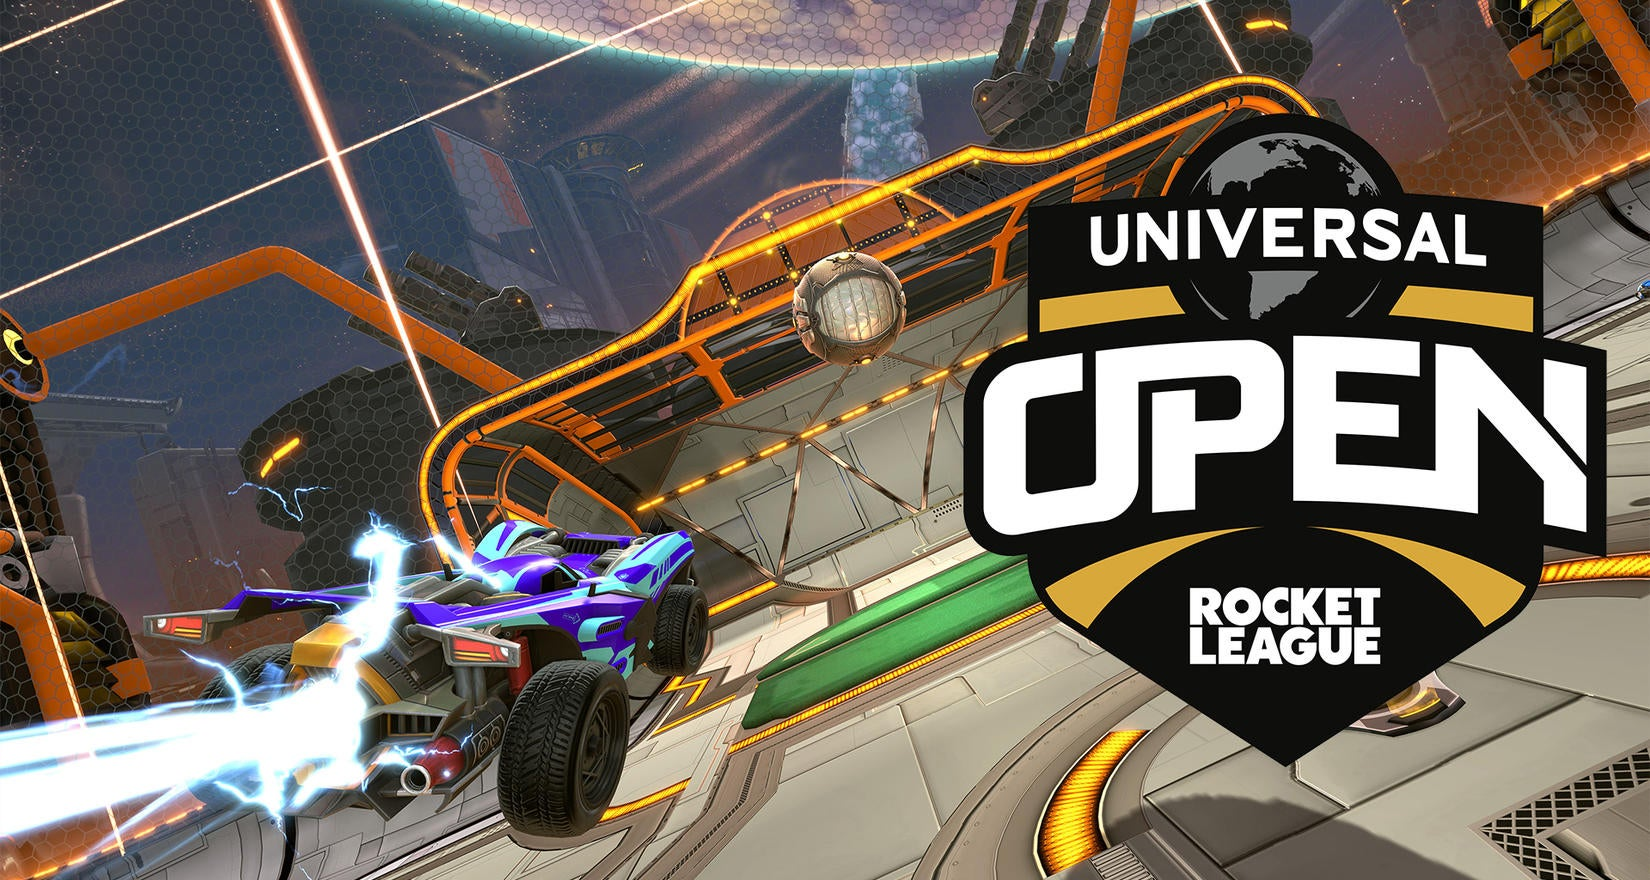 Universal Open Regionals Begin, Fan Rewards Available Image